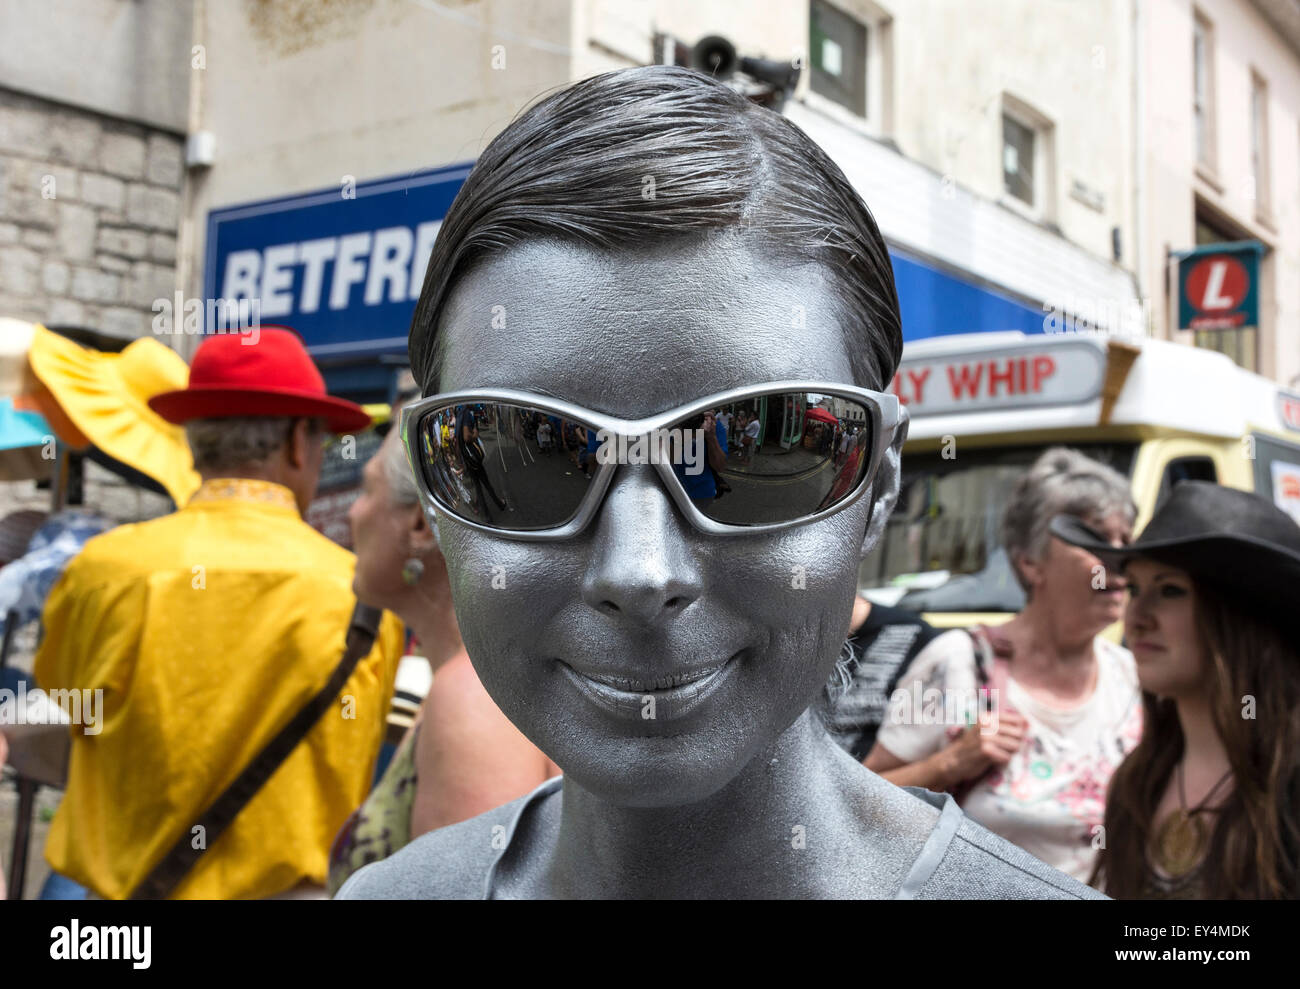 Young female with face painted metallic silver - Stock Image